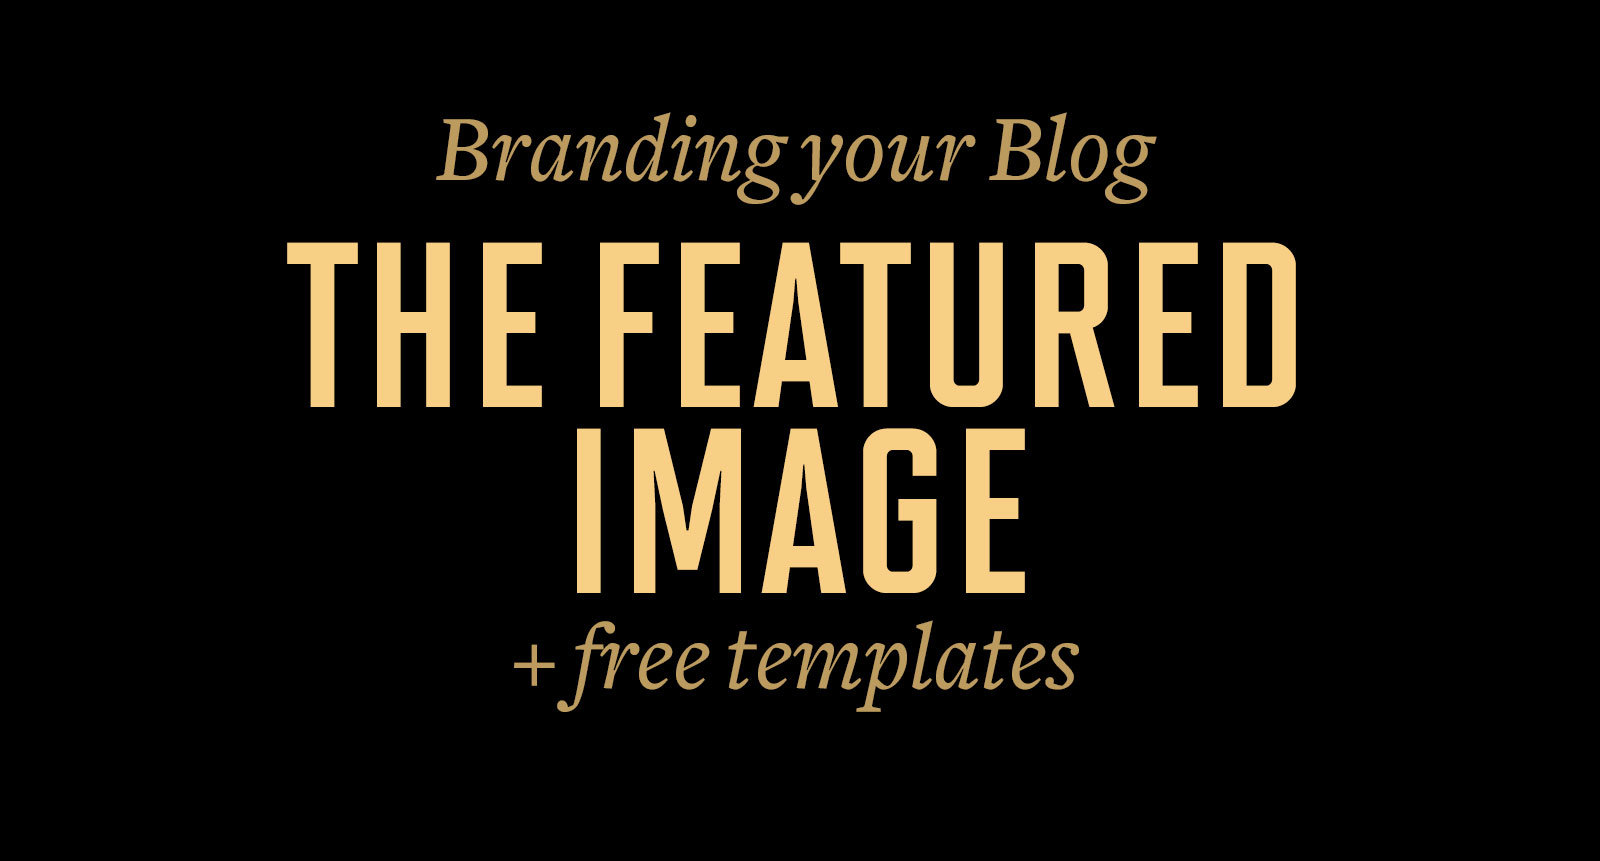 Branding your Blog - The Featured Image | crystalpulse.co.uk